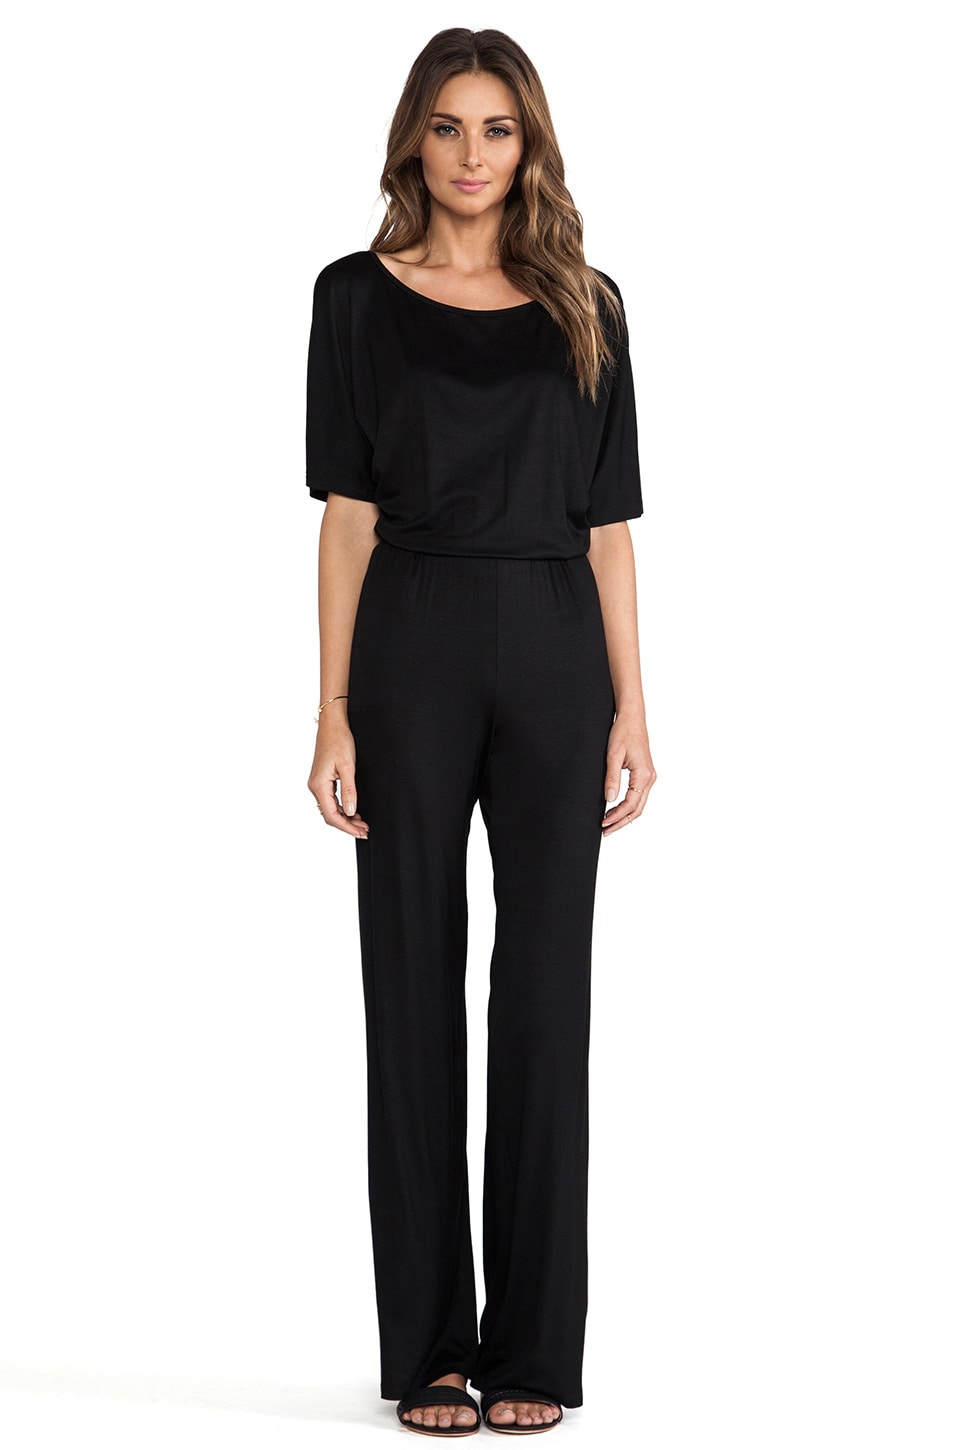 Trina Turk Malena Jumpsuit in Black